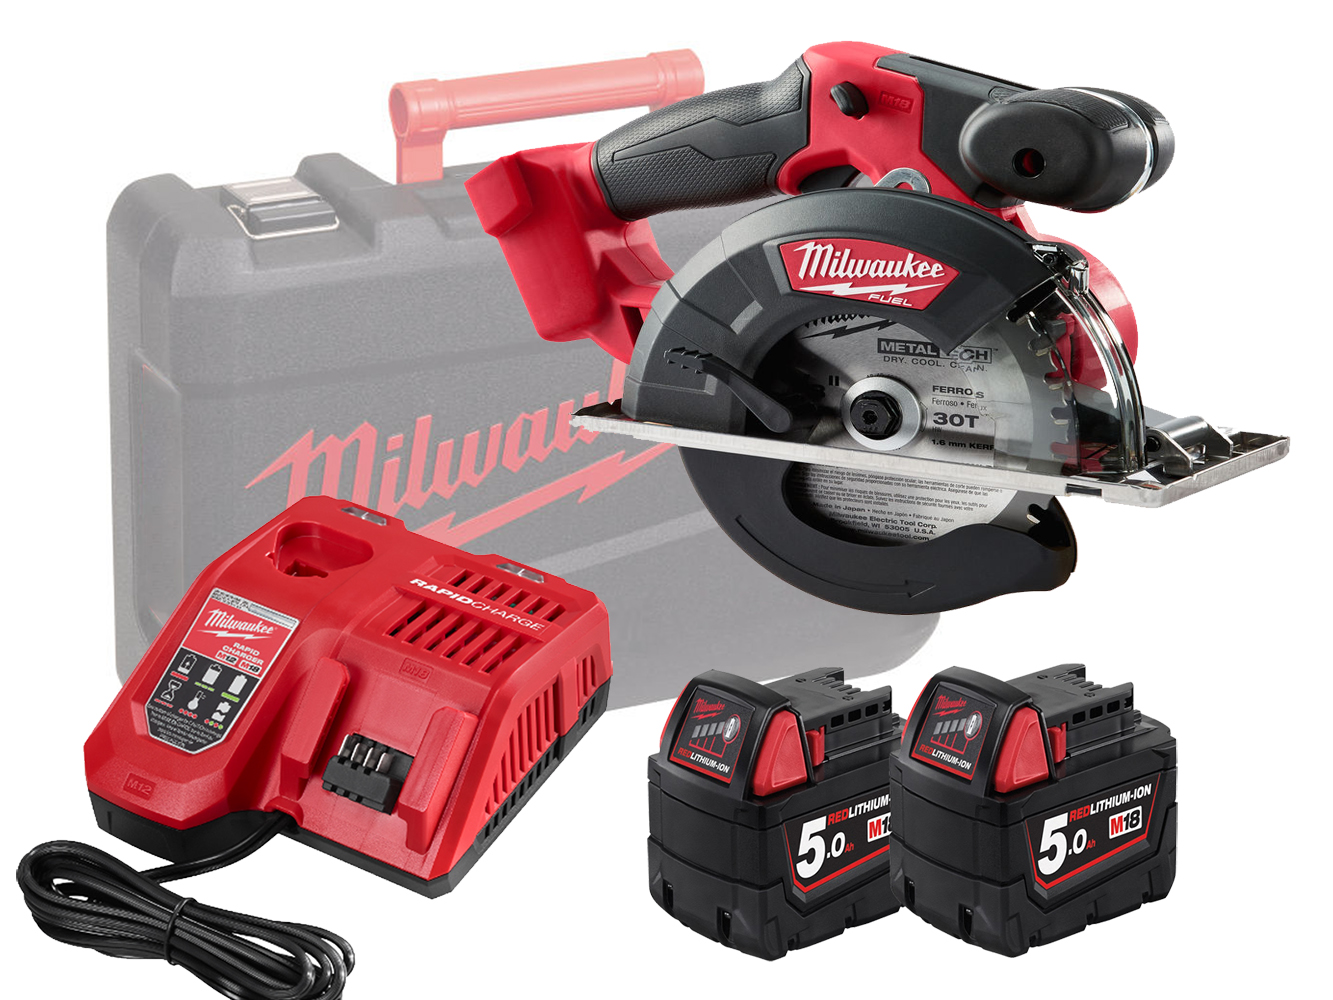 Milwaukee M18FMCS 18V FUEL 150mm (57mm) Metal Circular Saw - 5.0ah Pack